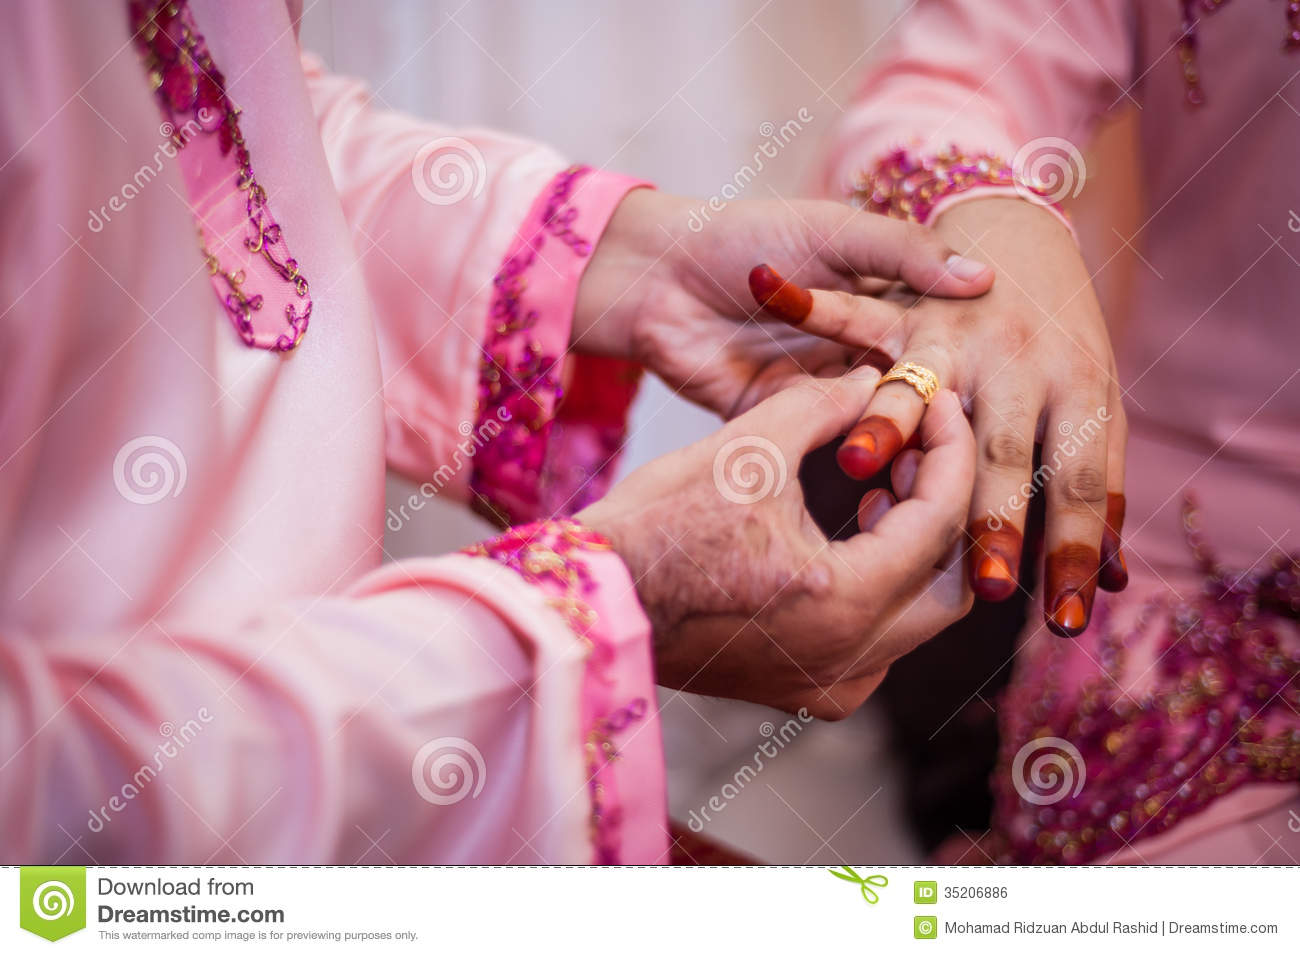 Wearing the wedding ring stock photo. Image of life, parts - 35206886